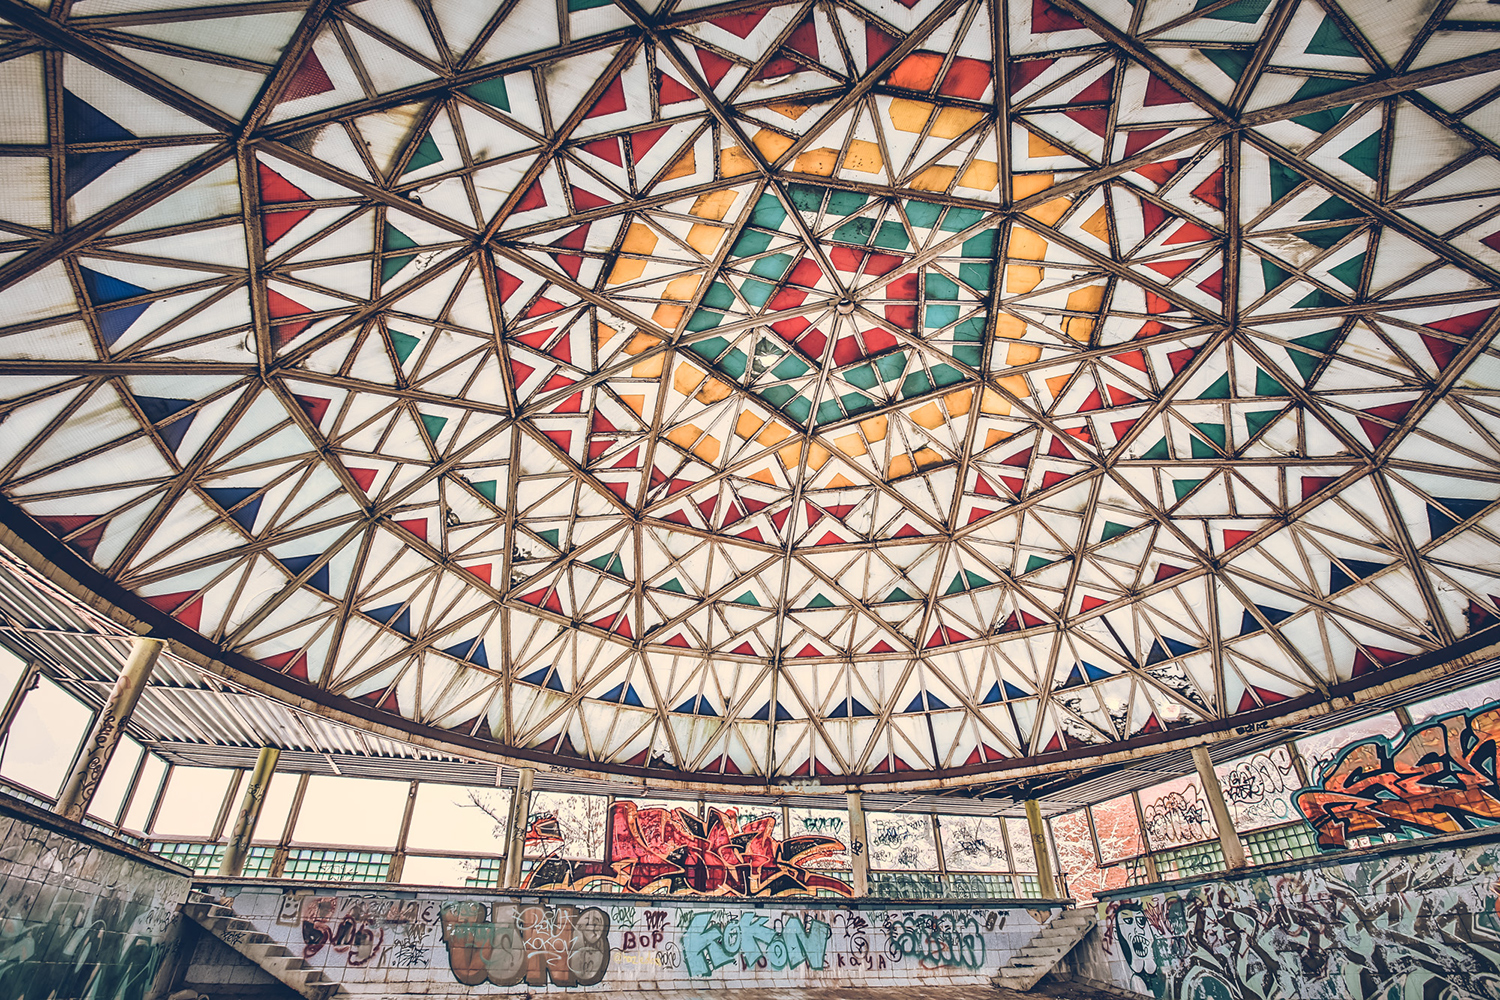 The Abandoned Kaleidoscope Pool